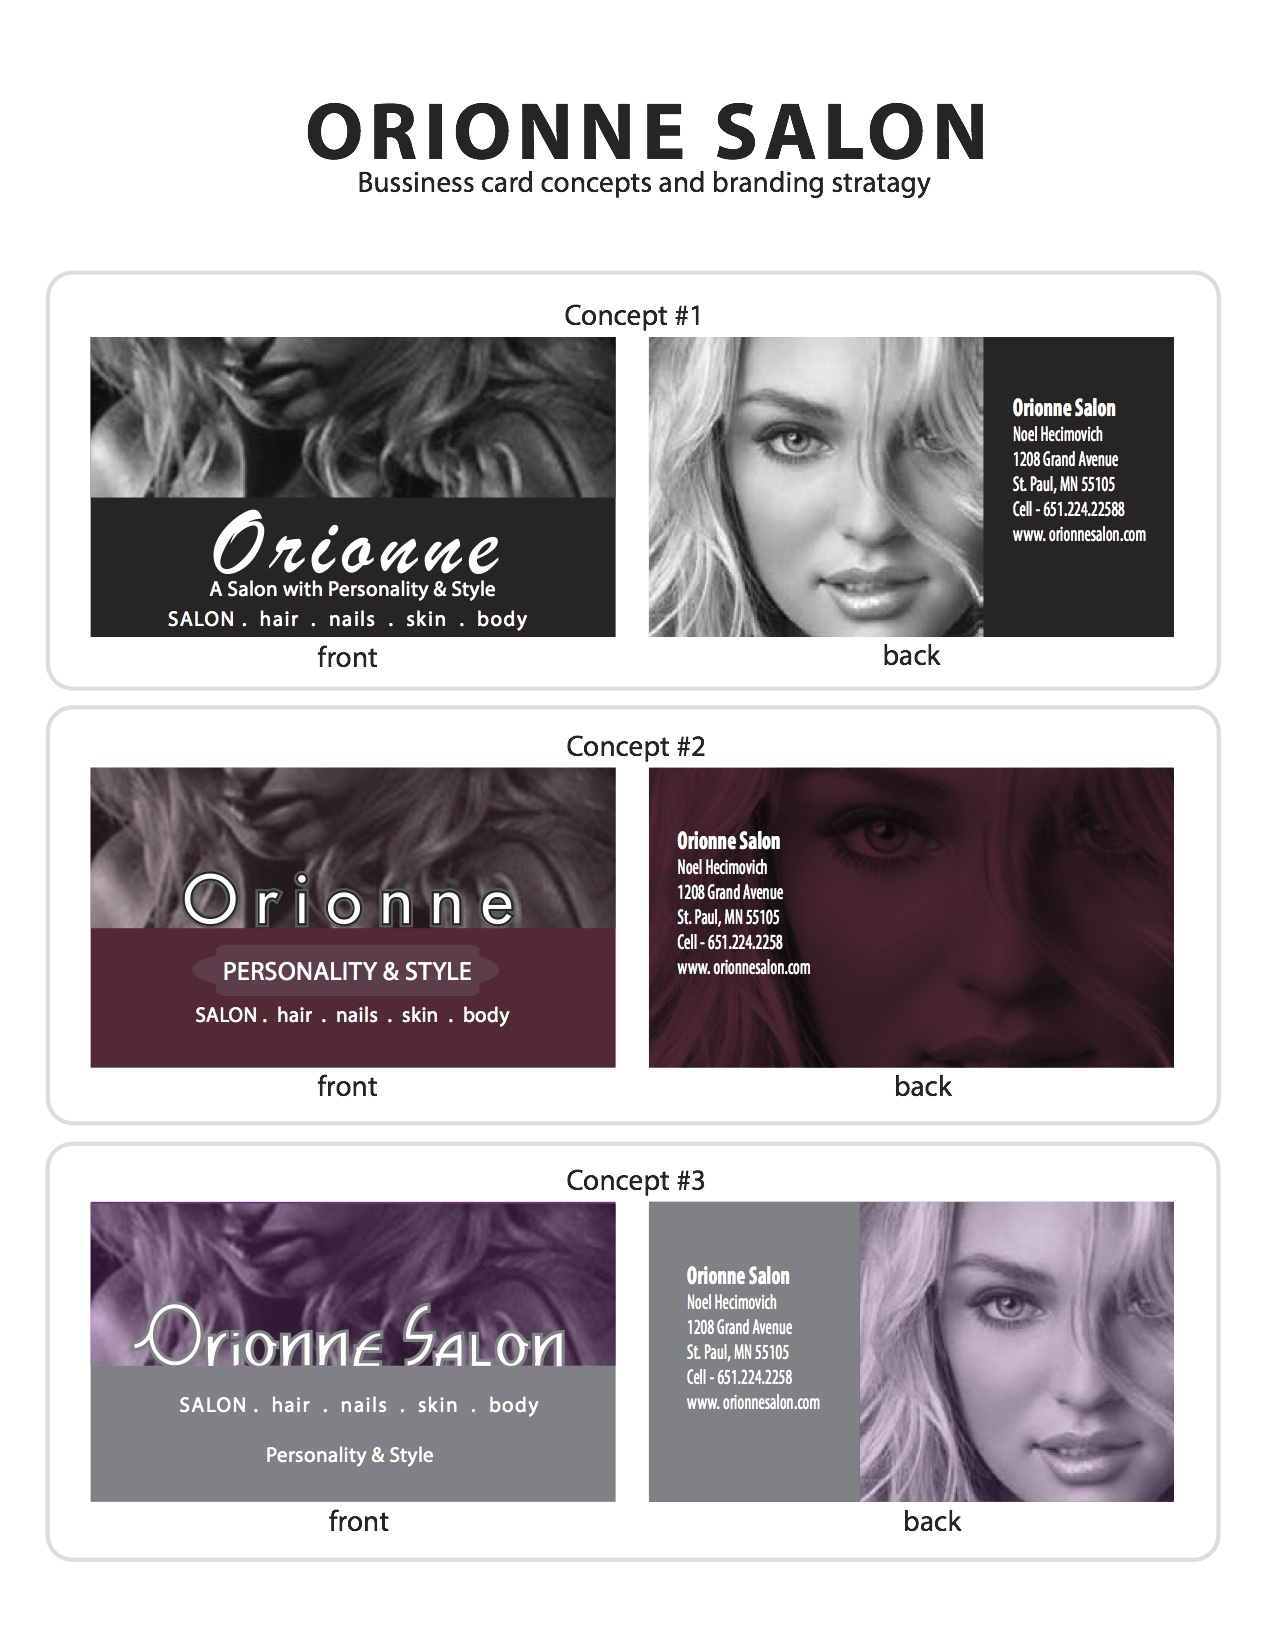 Corporate identity orionne salon m r danielson advertising corporate identity created an array of business cards for orionne salon an up and coming salon in the twin cities these cards were printed using metallic reheart Image collections